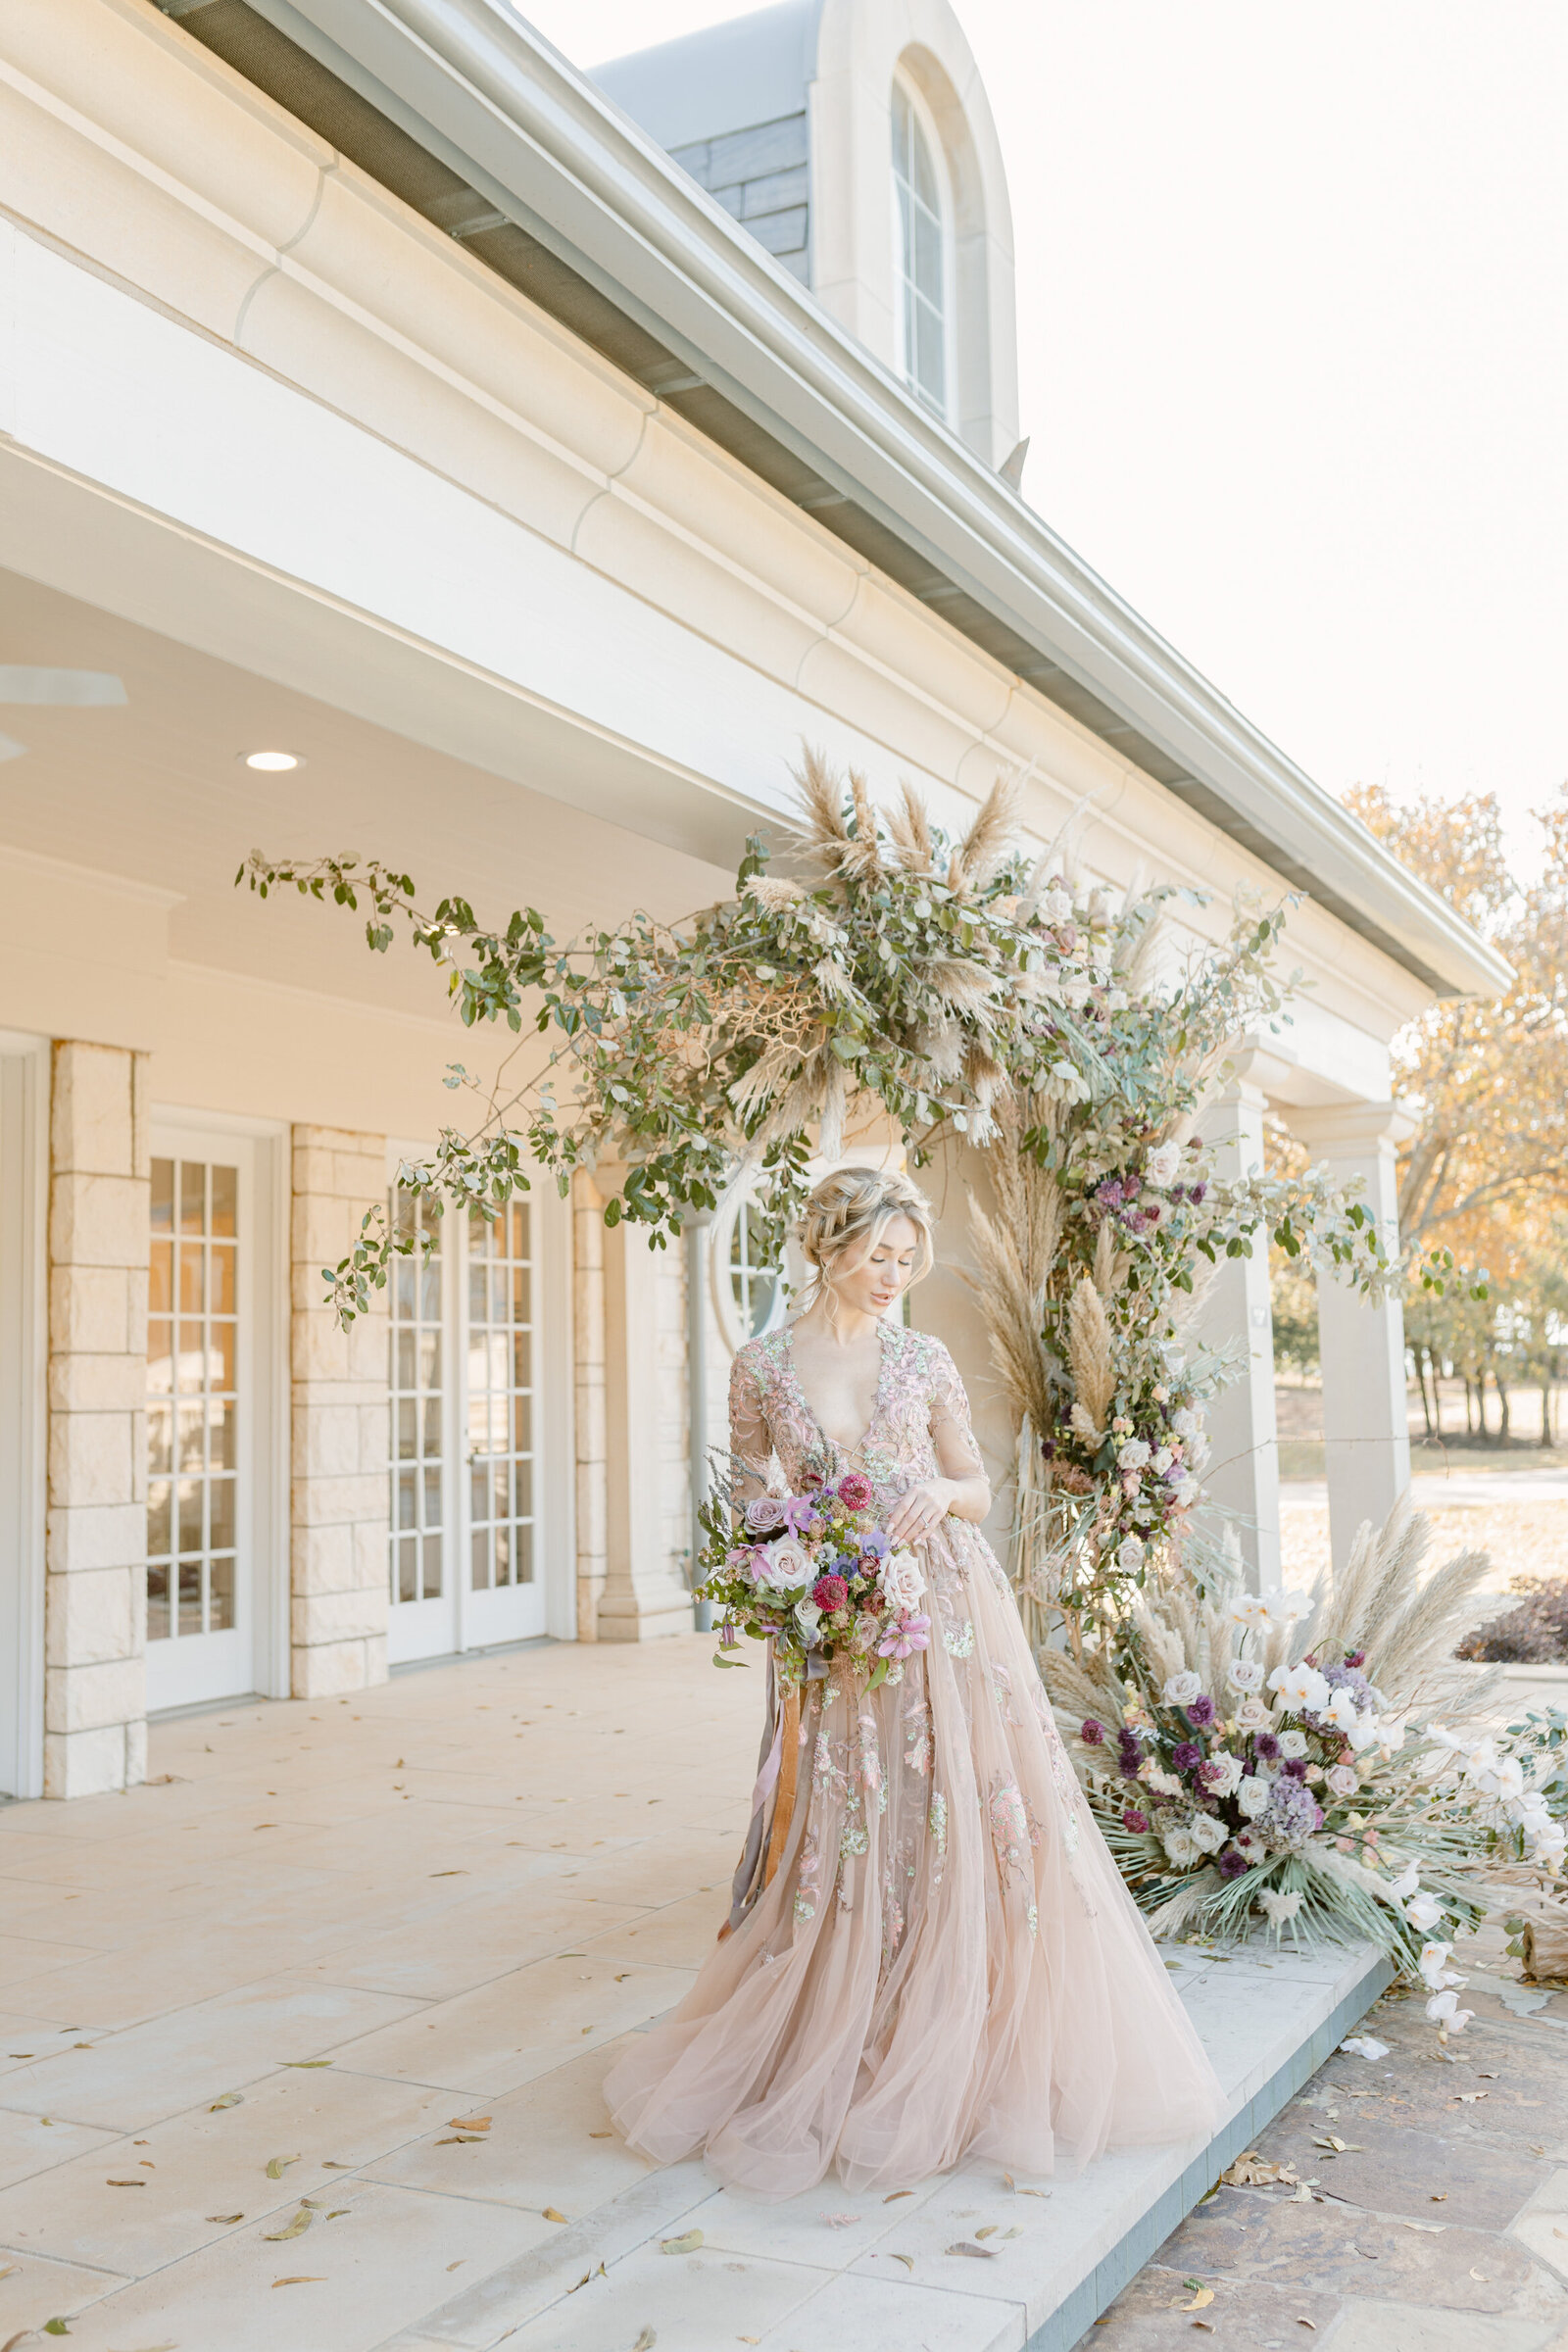 Beautiful bride outside of chateau underneath floral installation and holding a bouquet